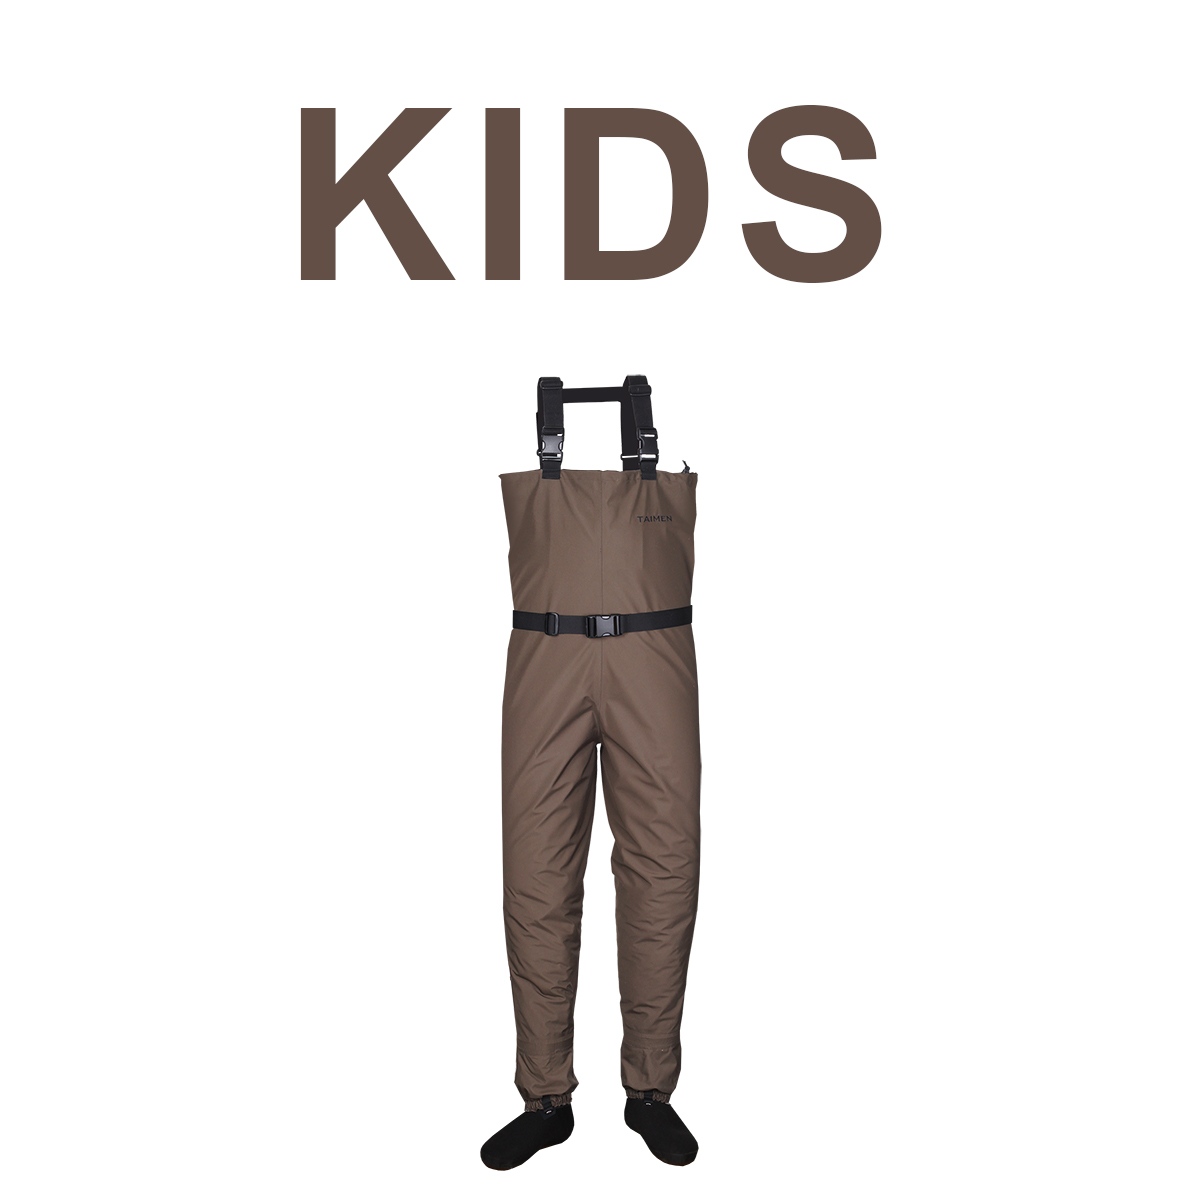 Taimen stx waders kids fishing waders chest hip and for Kids fishing waders